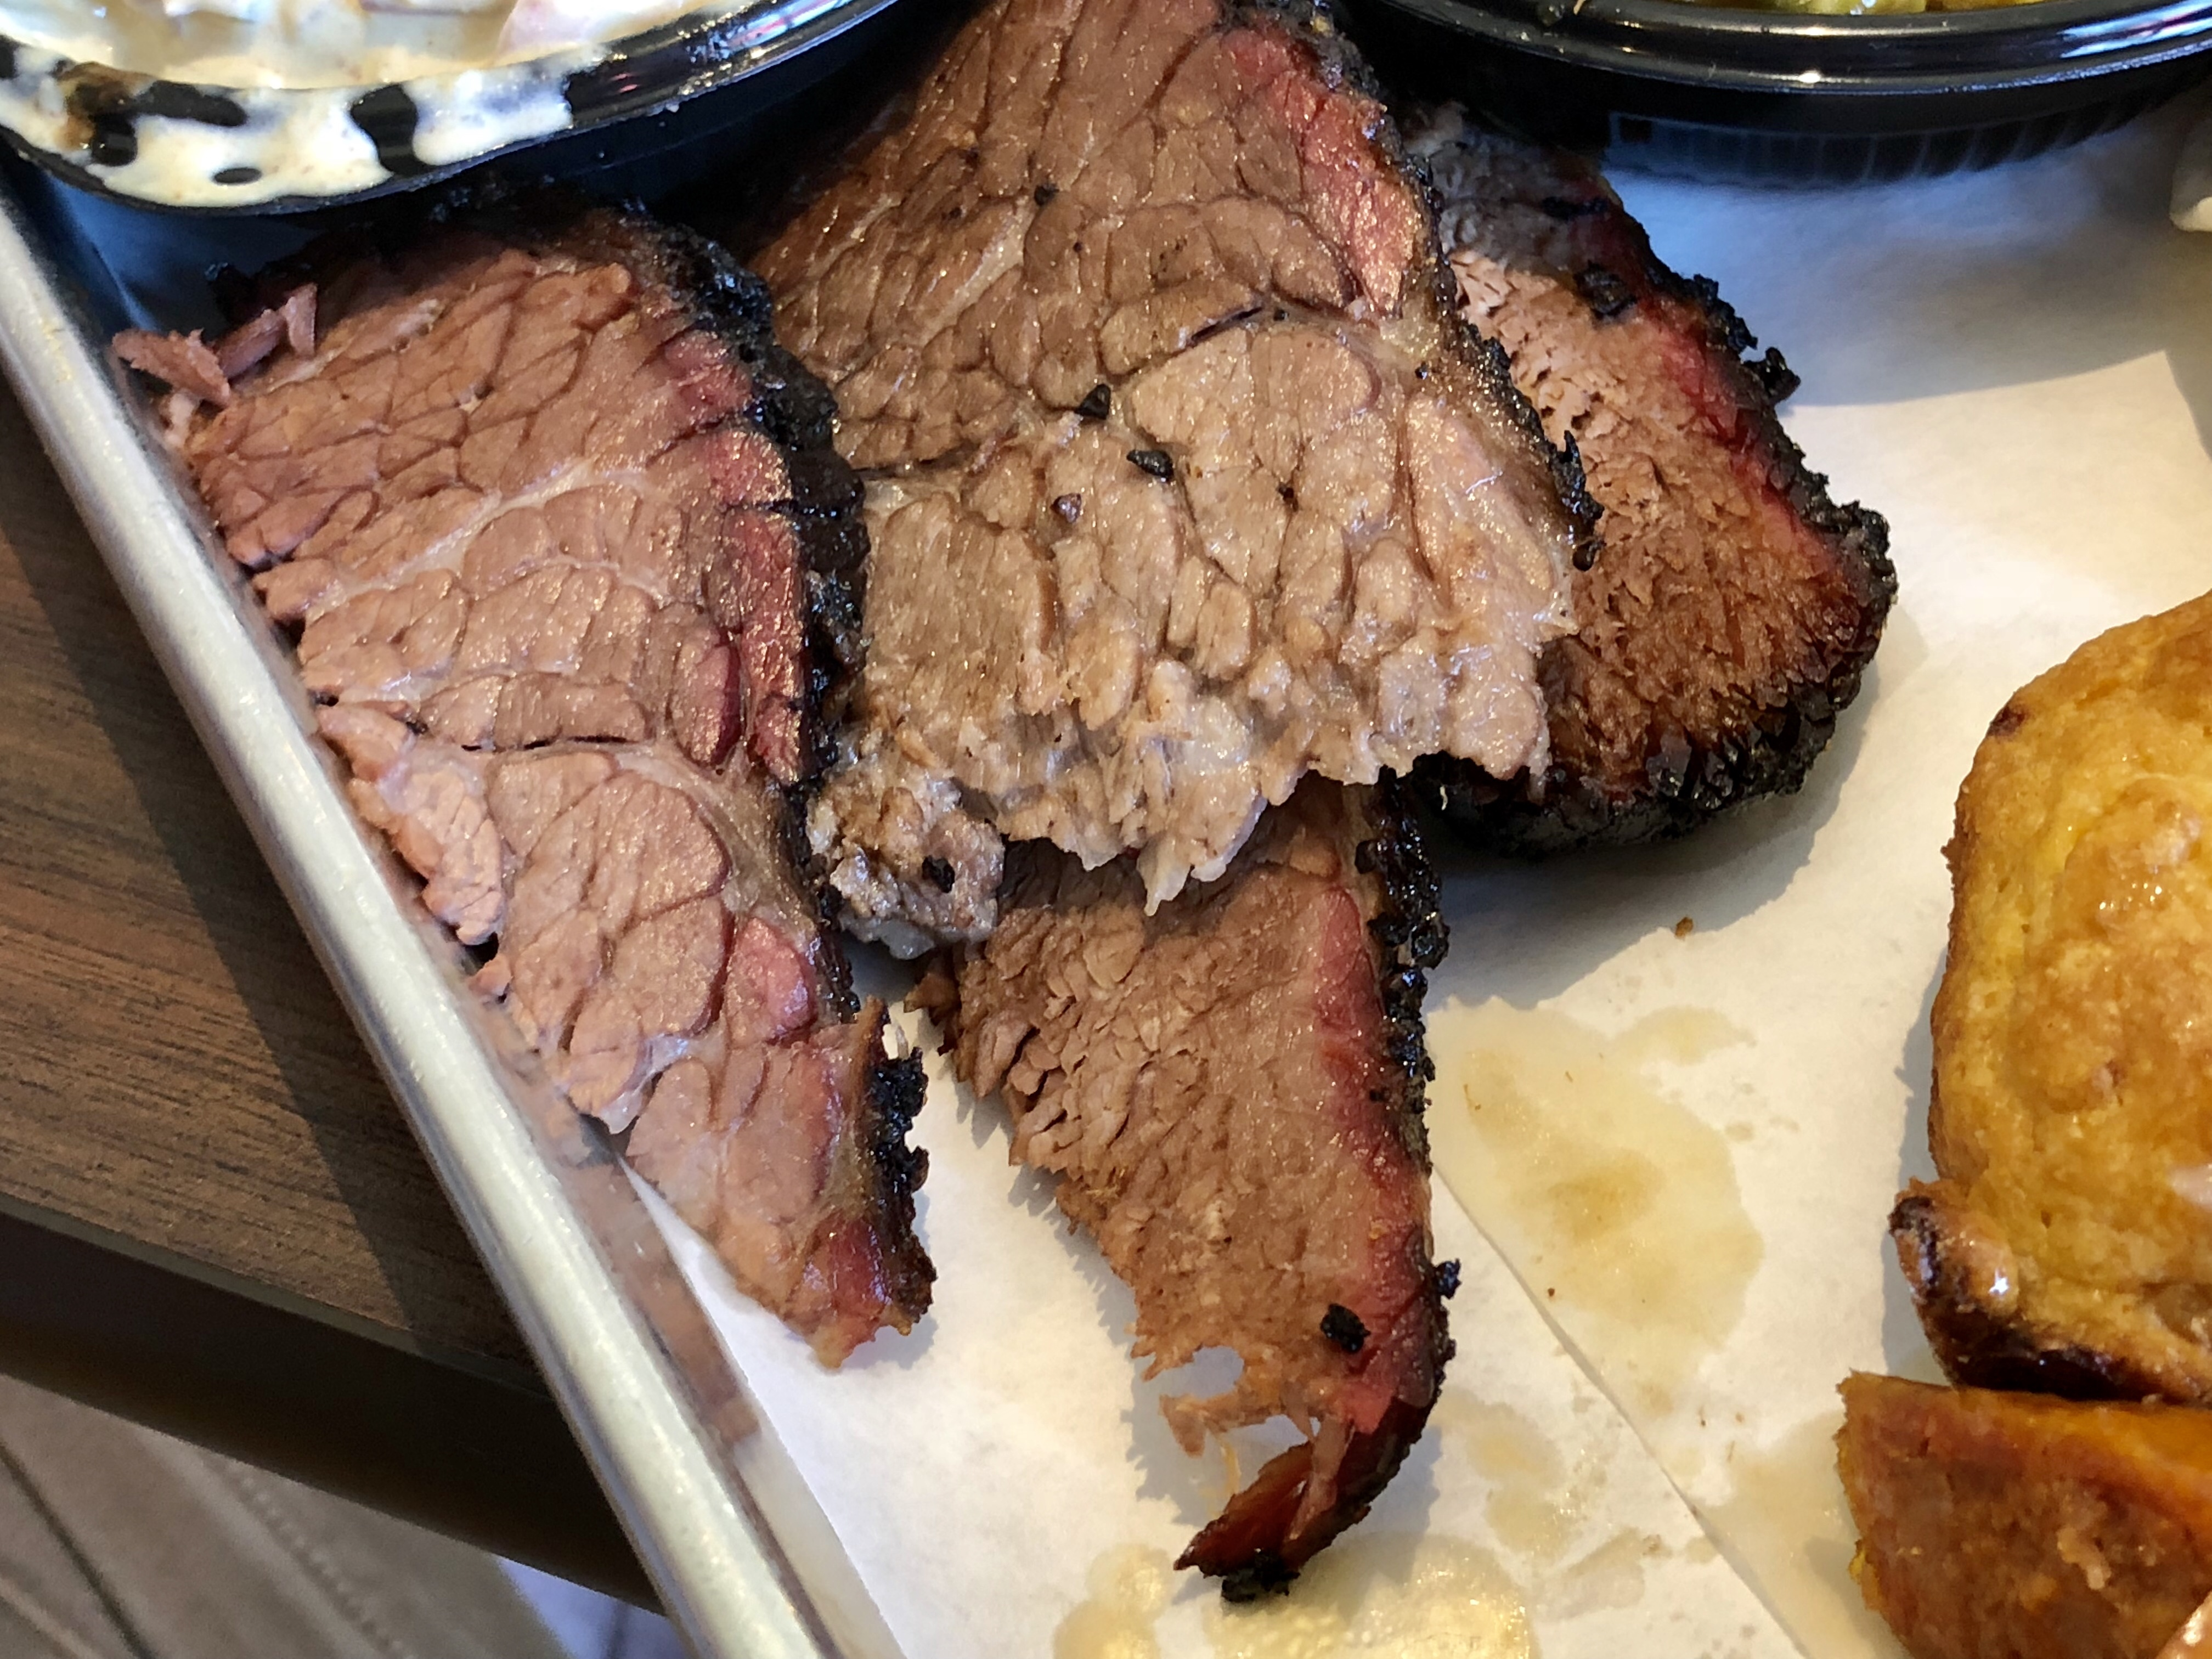 The brisket at Smoke BBQ in Audubon is minimalist in the Texas style, but peppery, tender, smoky and good.